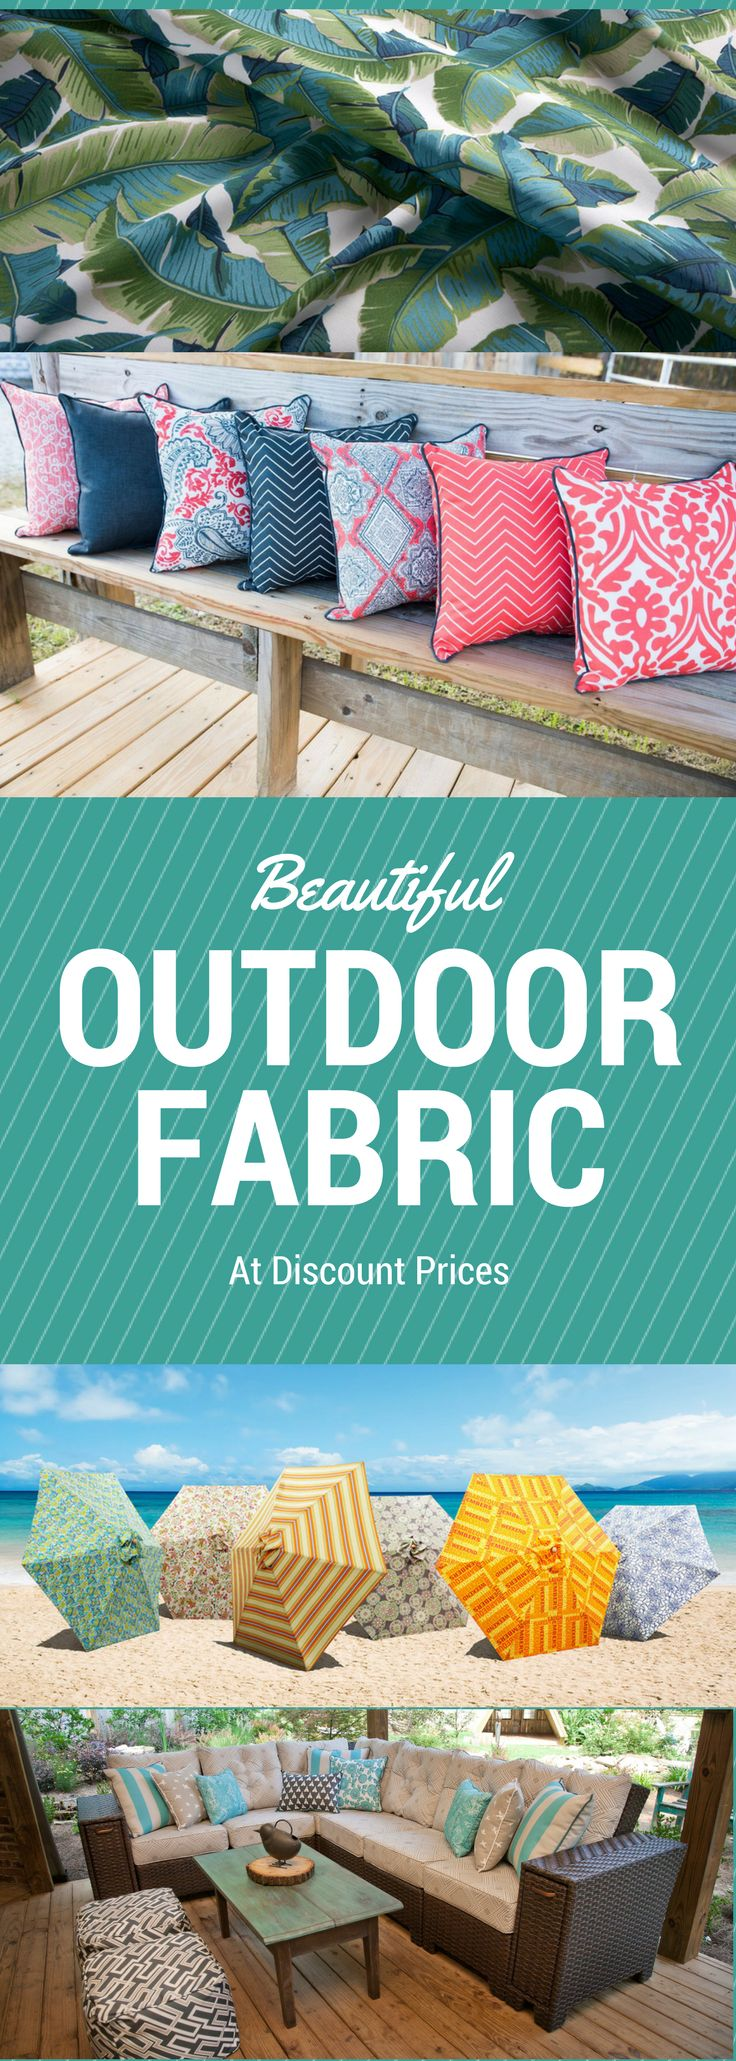 Fabricguru.com carries over 6,000 discount outdoor fabrics from all your favorite designers: Sunbrella, Bella Dura, Richloom, Premier Prints, and many more. Shop today and save!